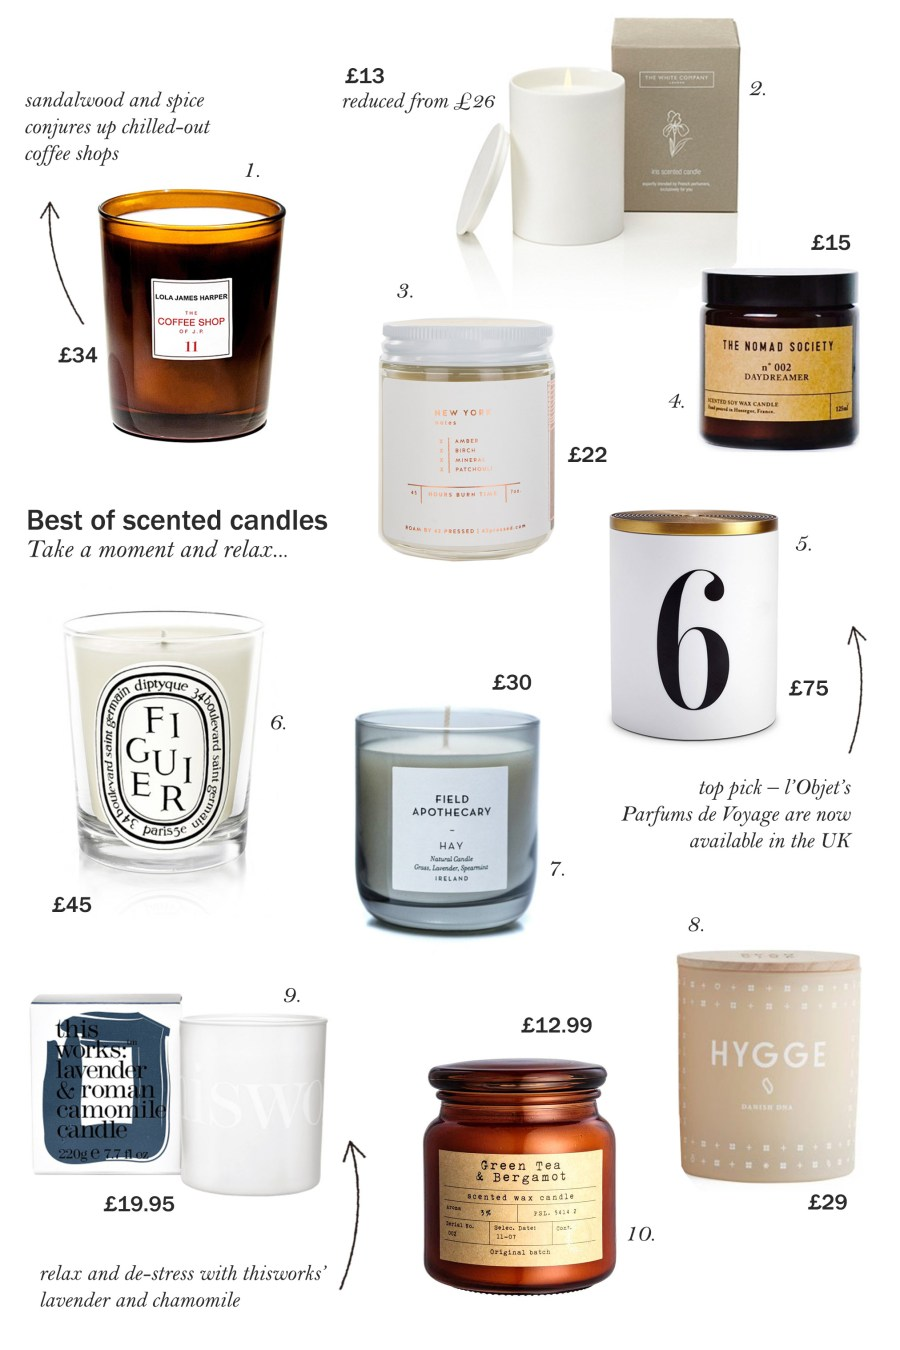 10 of the best scented candles - cate st hill